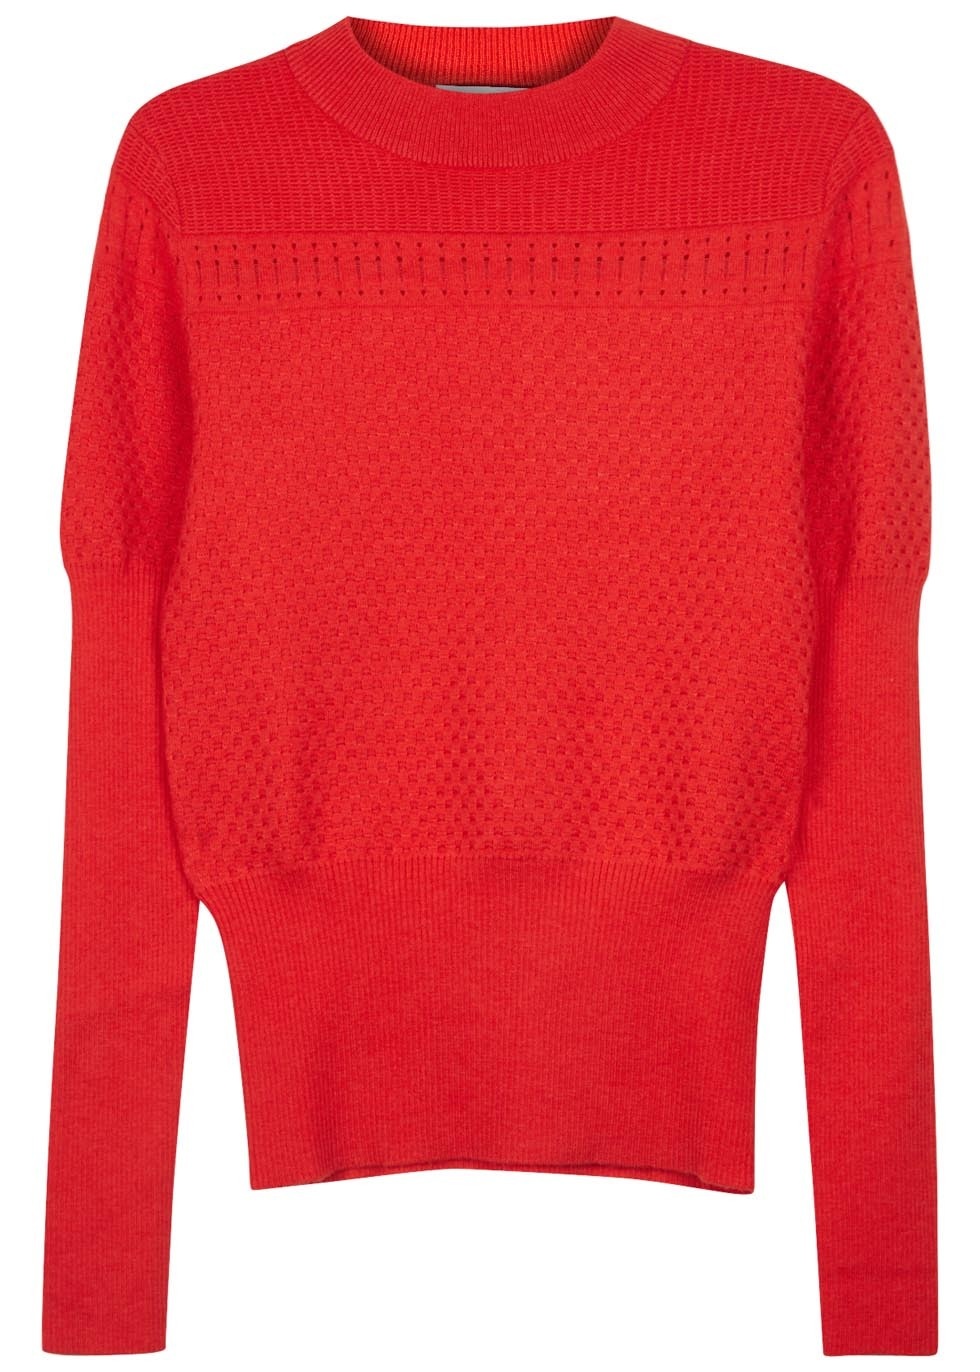 Red Textured Knit Wool Blend Jumper - neckline: round neck; pattern: plain; style: standard; sleeve style: leg o mutton; predominant colour: true red; occasions: casual, creative work, activity; length: standard; fibres: wool - mix; fit: standard fit; sleeve length: long sleeve; texture group: knits/crochet; pattern type: knitted - fine stitch; season: s/s 2016